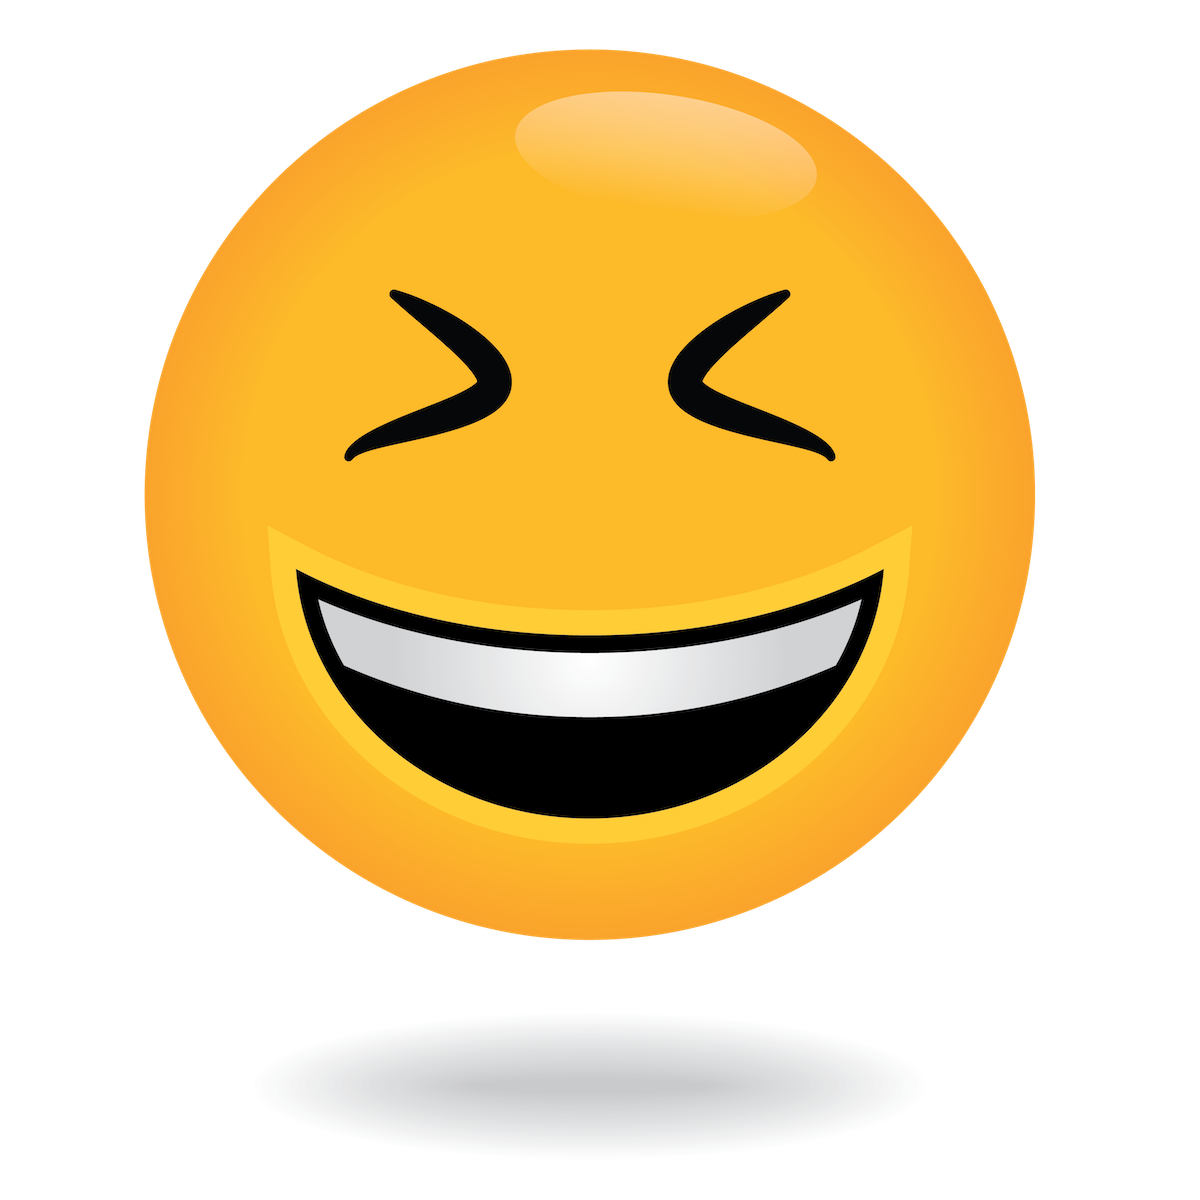 laughing emoji by define awesome